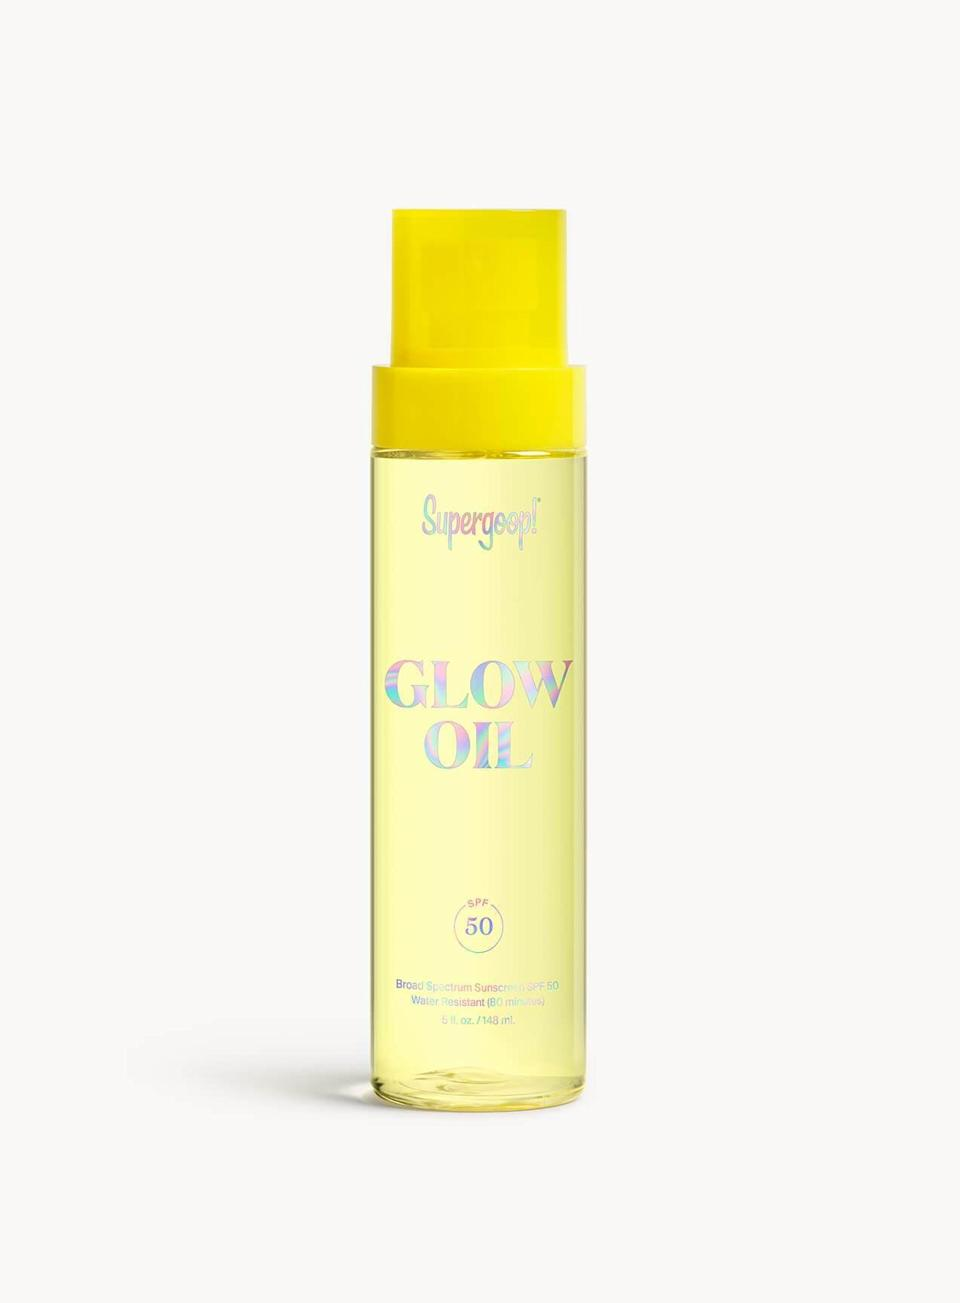 """<p>""""I recently started using the <a href=""""https://www.popsugar.com/buy/Supergoop-Glow-Oil-SPF-50-585615?p_name=Supergoop%21%20Glow%20Oil%20SPF%2050&retailer=sephora.com&pid=585615&price=38&evar1=bella%3Auk&evar9=47580543&evar98=https%3A%2F%2Fwww.popsugar.com%2Fbeauty%2Fphoto-gallery%2F47580543%2Fimage%2F47582481%2FSupergoop-Glow-Oil-SPF-50&list1=beauty%20products%2Csunscreen%2Ceditors%20pick%2Csummer%2Cskin%20care&prop13=api&pdata=1"""" class=""""link rapid-noclick-resp"""" rel=""""nofollow noopener"""" target=""""_blank"""" data-ylk=""""slk:Supergoop! Glow Oil SPF 50"""">Supergoop! Glow Oil SPF 50</a> ($38) and I love the glow, the smell, and the fact that my legs are protected with 50 SPF while also looking moisturized. Supergoop has always been a favorite sunscreen brand but this oil is my new favorite product of theirs."""" - LS</p>"""